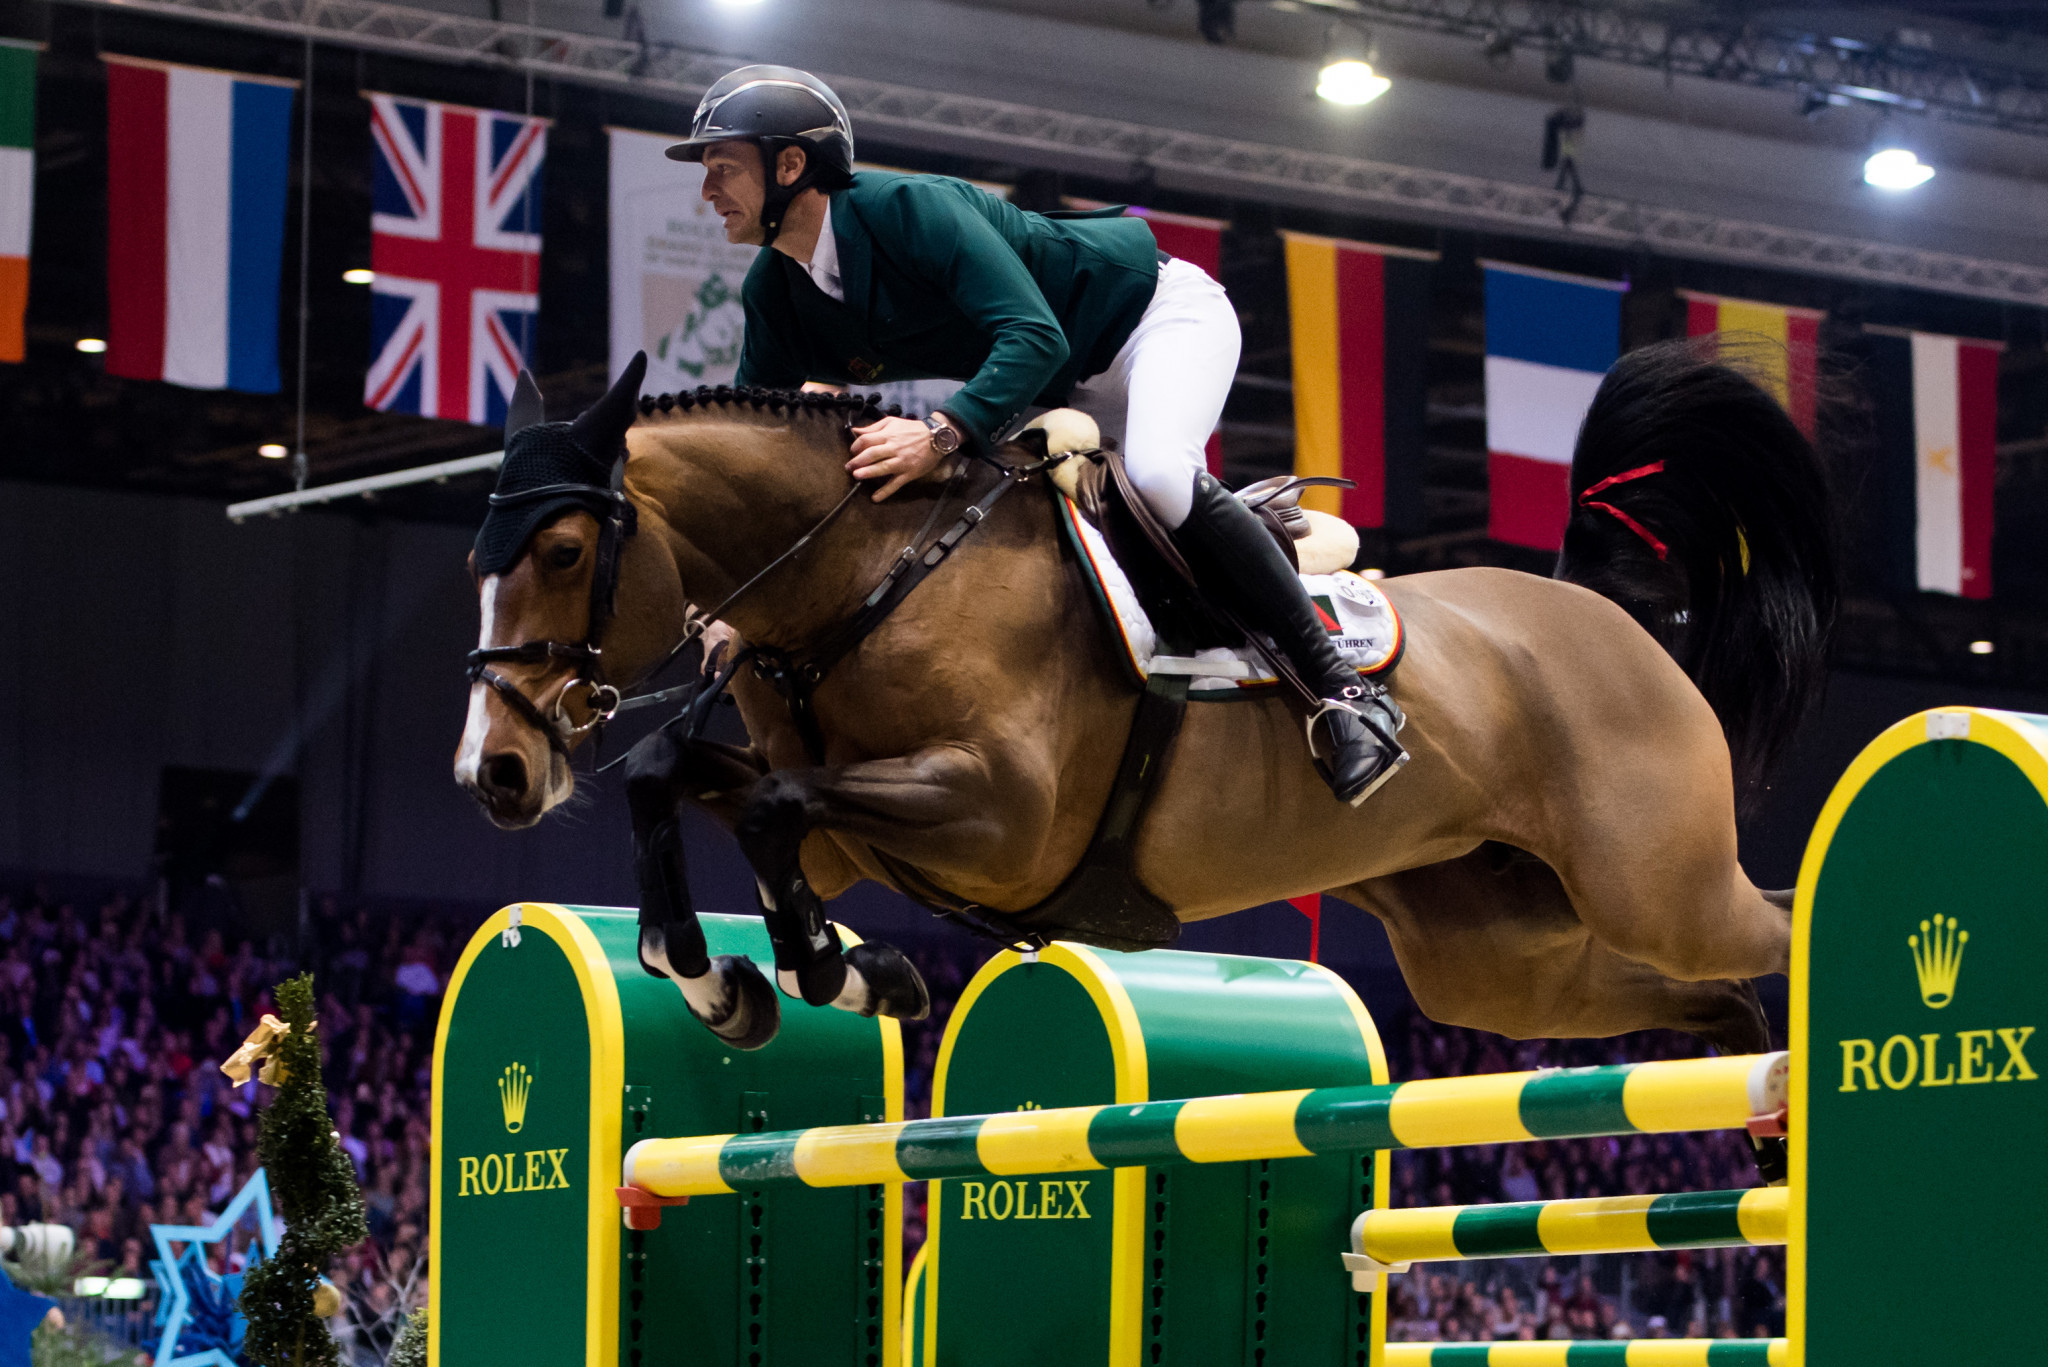 World number one Guerdat to compete in front of home crowd at FEI Jumping World Cup leg in Basel